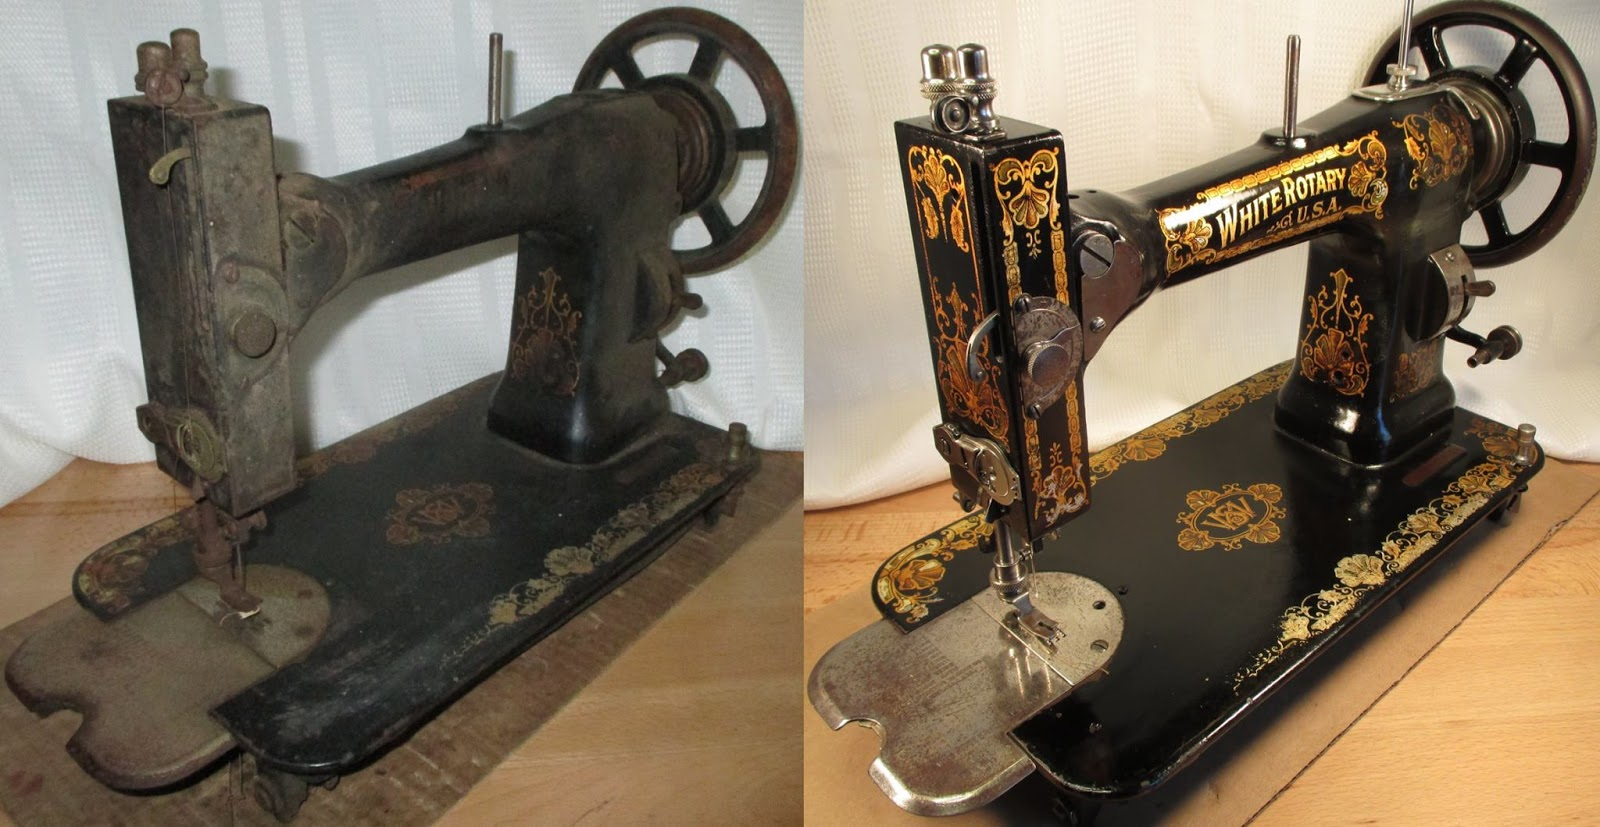 Grant Gray shows us a before and after vintage sewing machine.